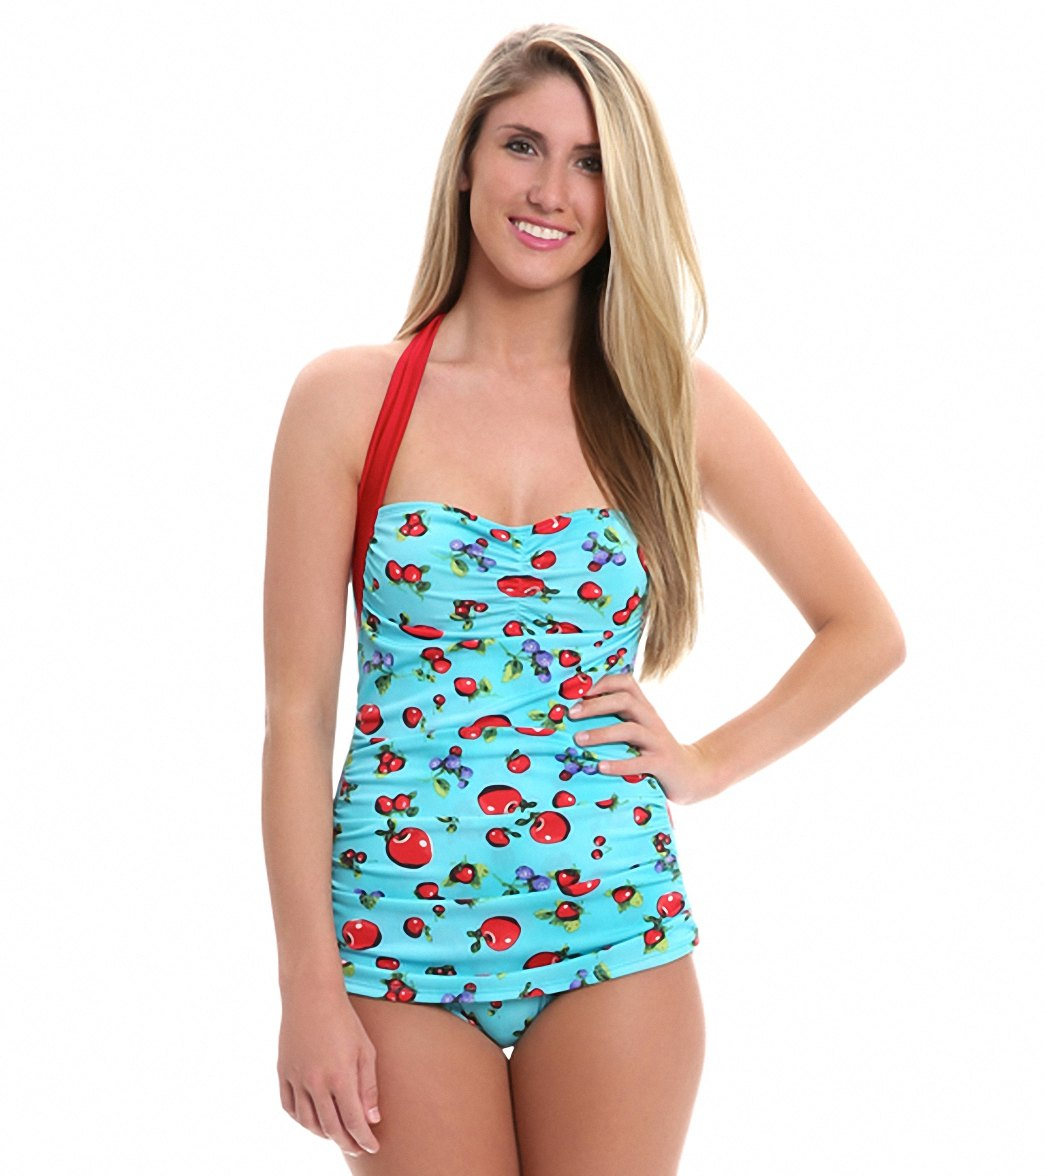 0b3afaf1d39 Girlhowdy Annie Frock One Piece Swimsuit at SwimOutlet.com - Free ...